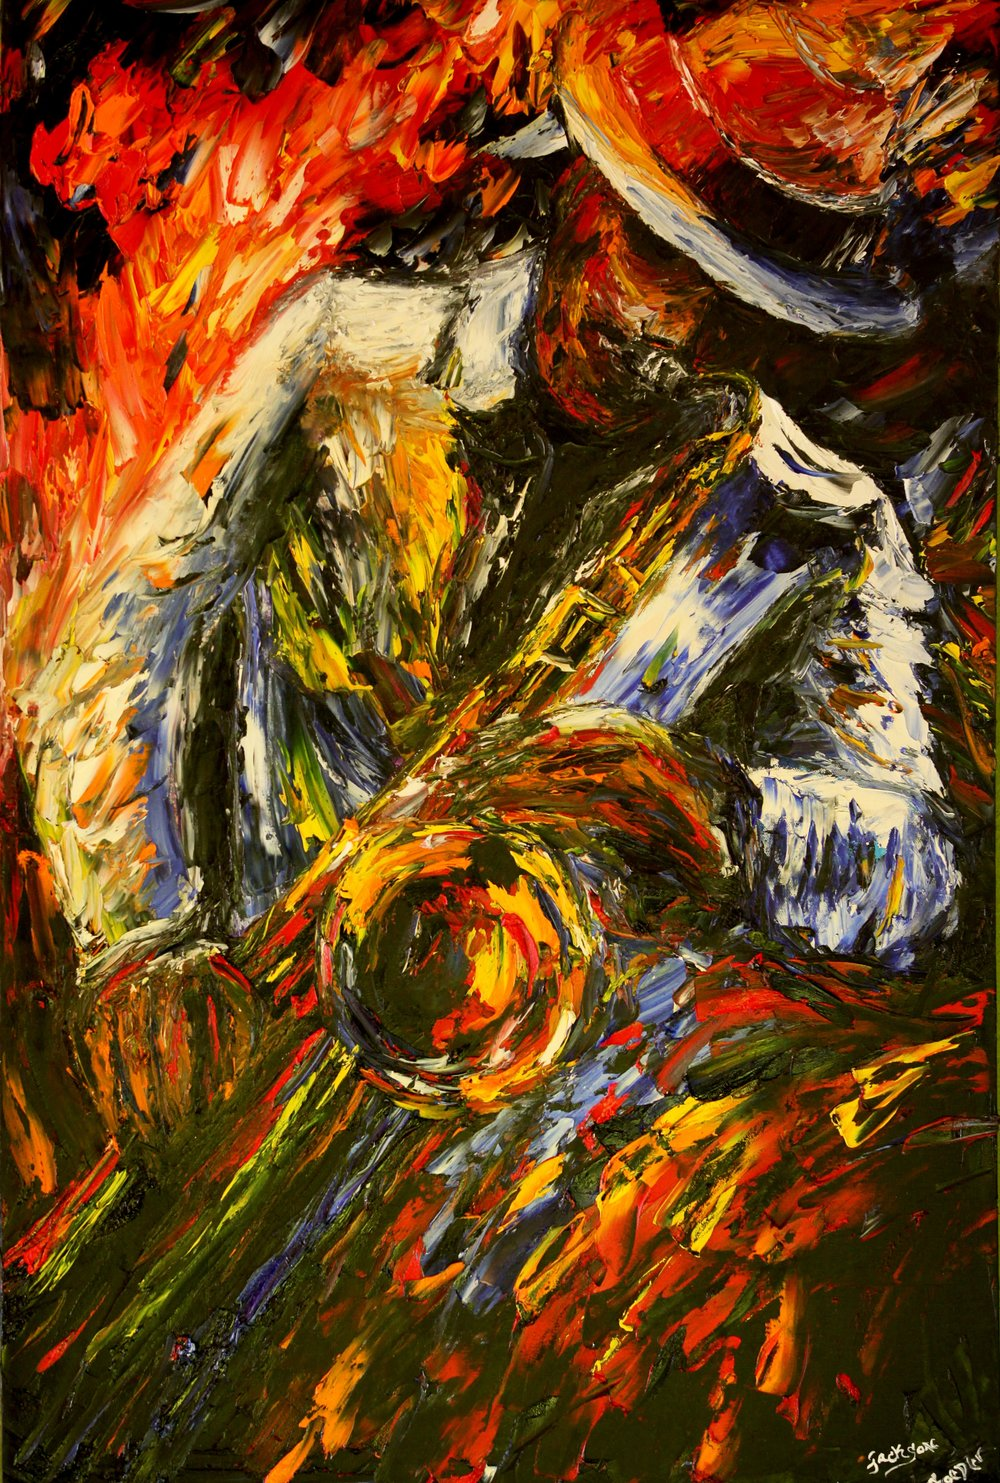 Saxophone - Reprint Available For Purchase